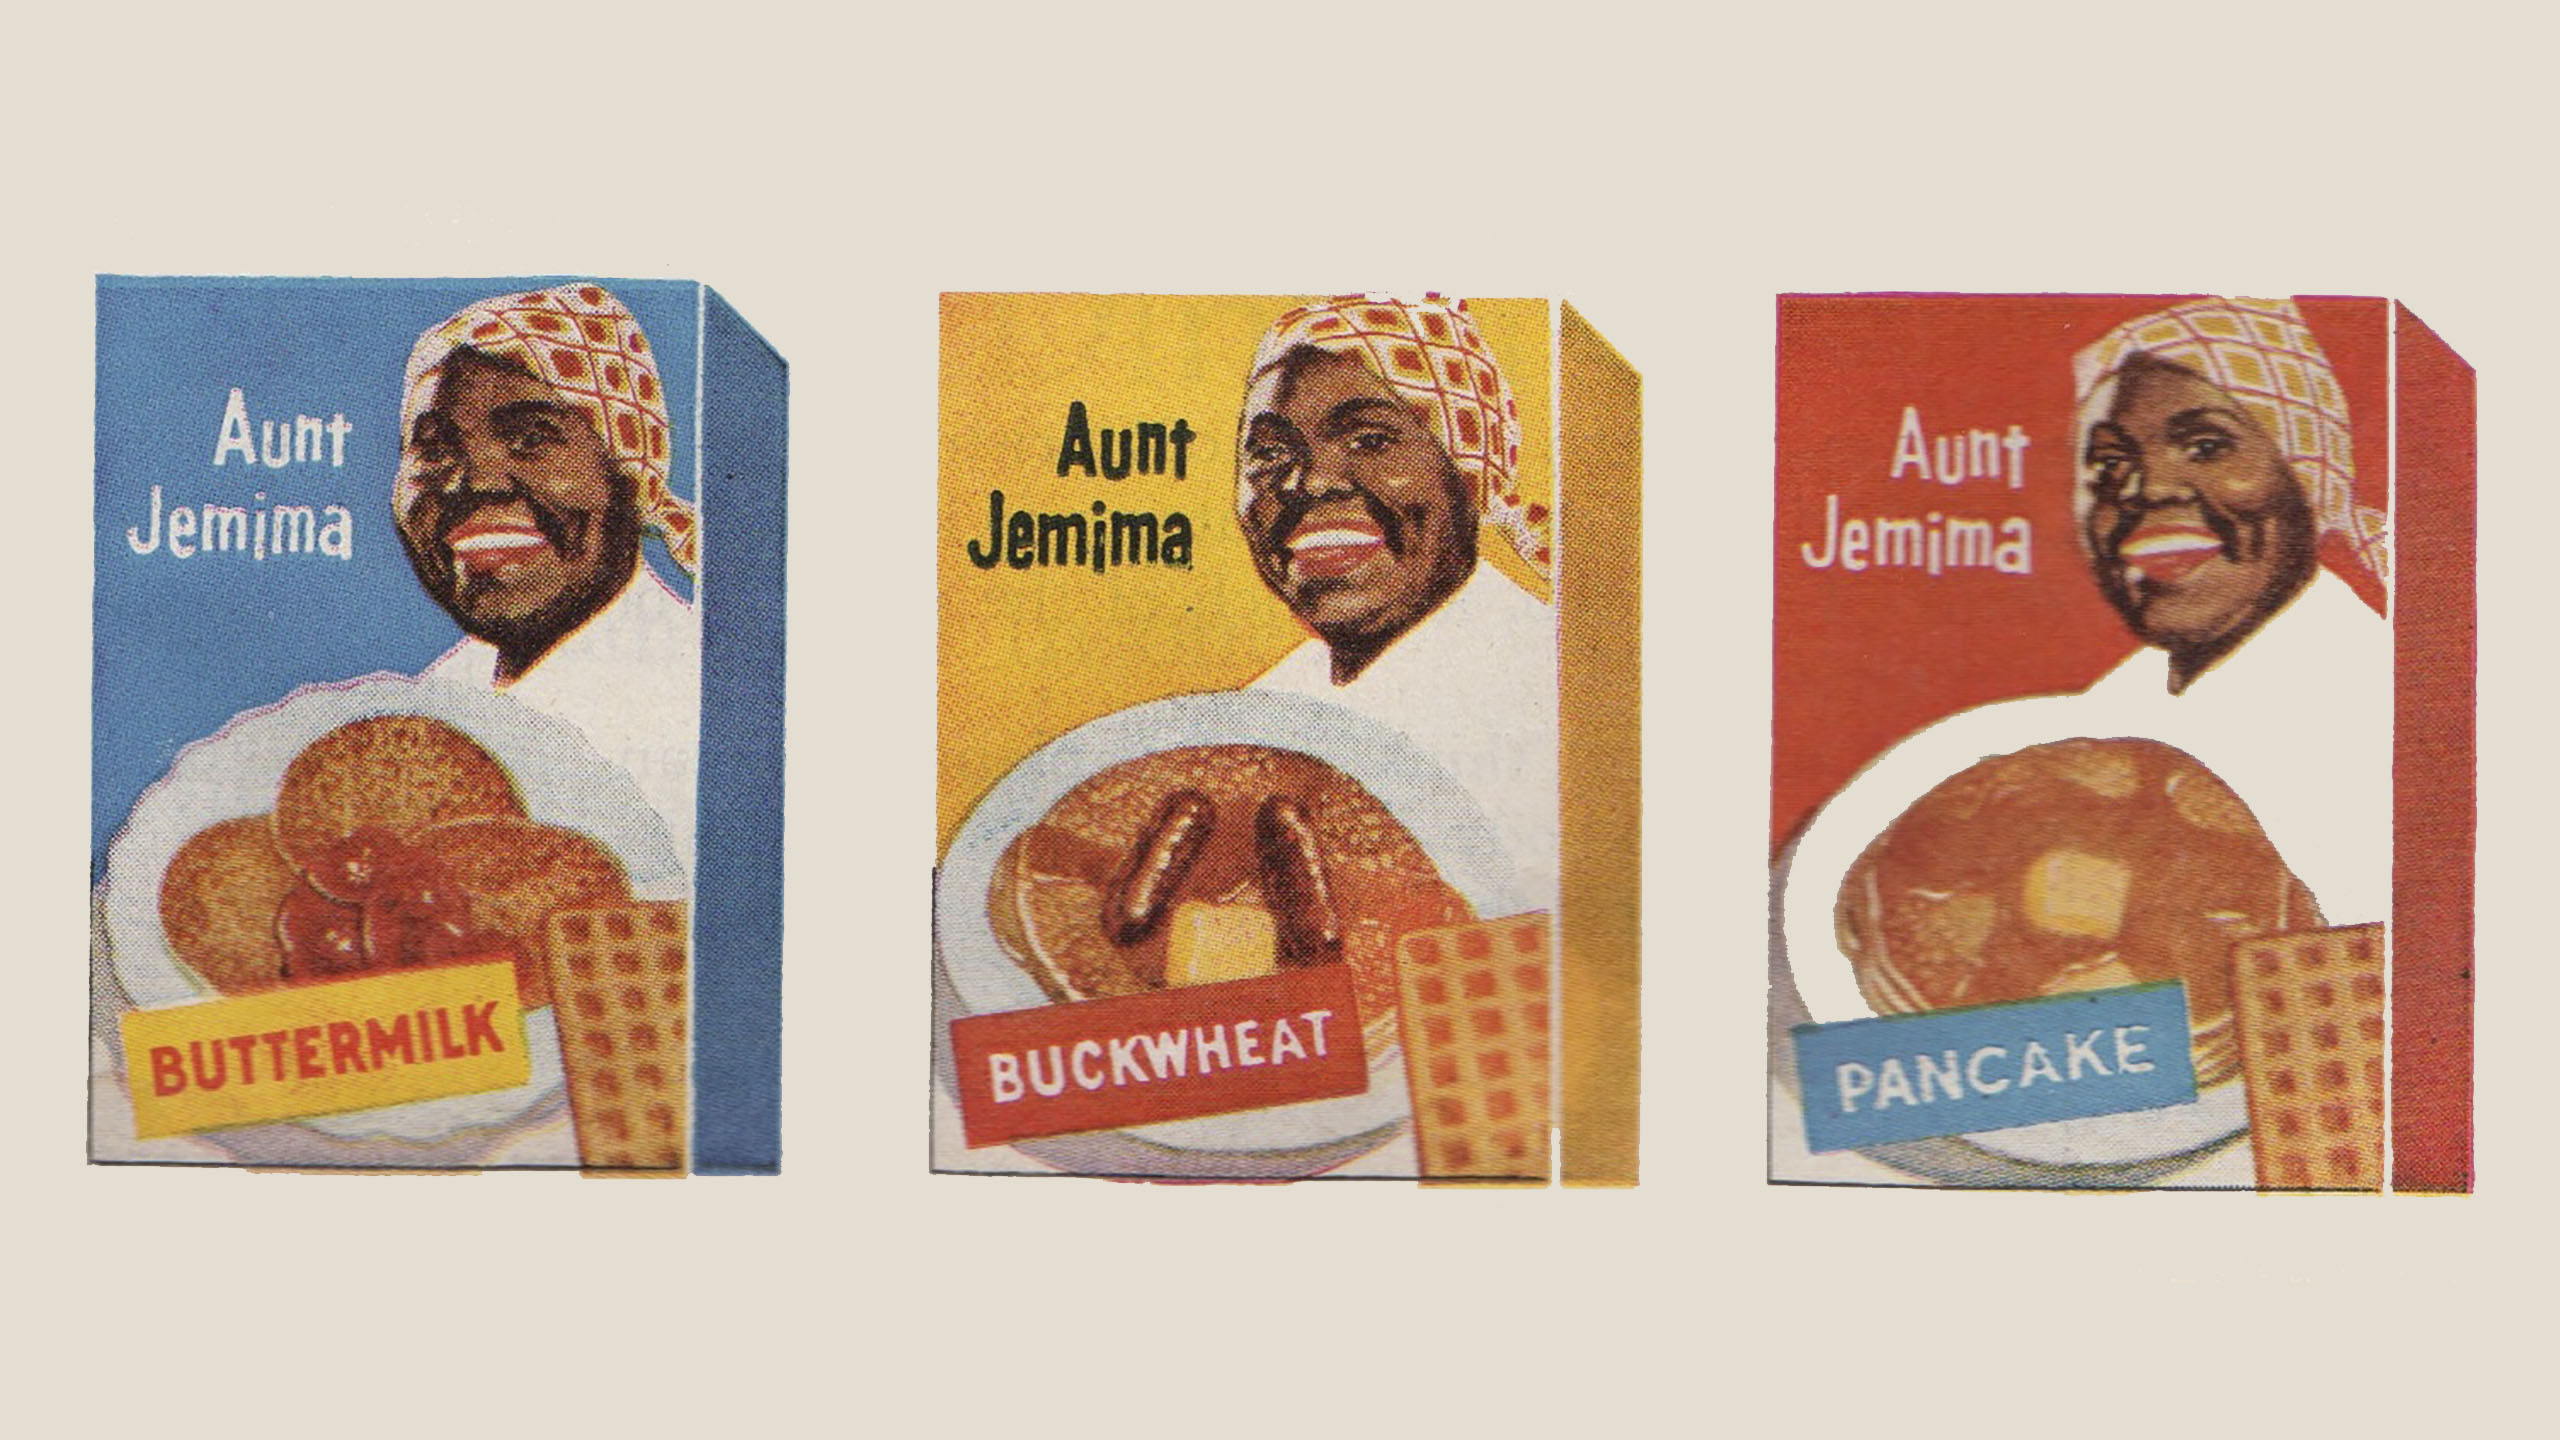 Aunt Jemima, hot cakes, Quaker Oats